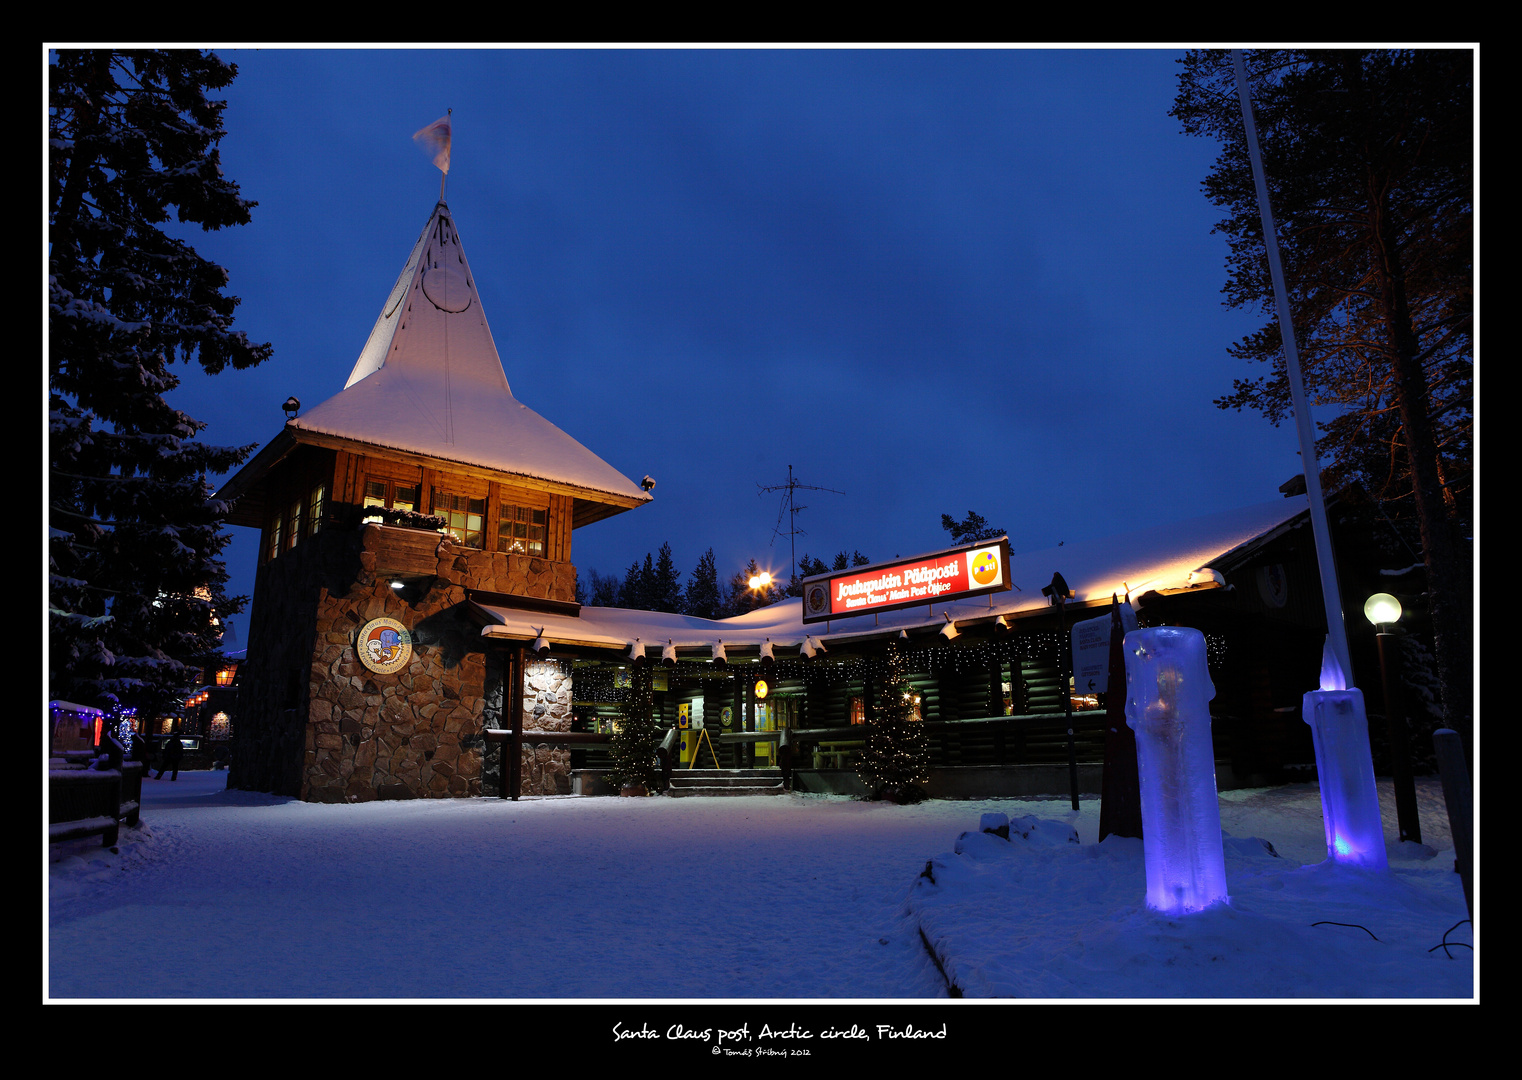 .:SANTA CLAUS POST, ARCTIC CIRCLE II:.